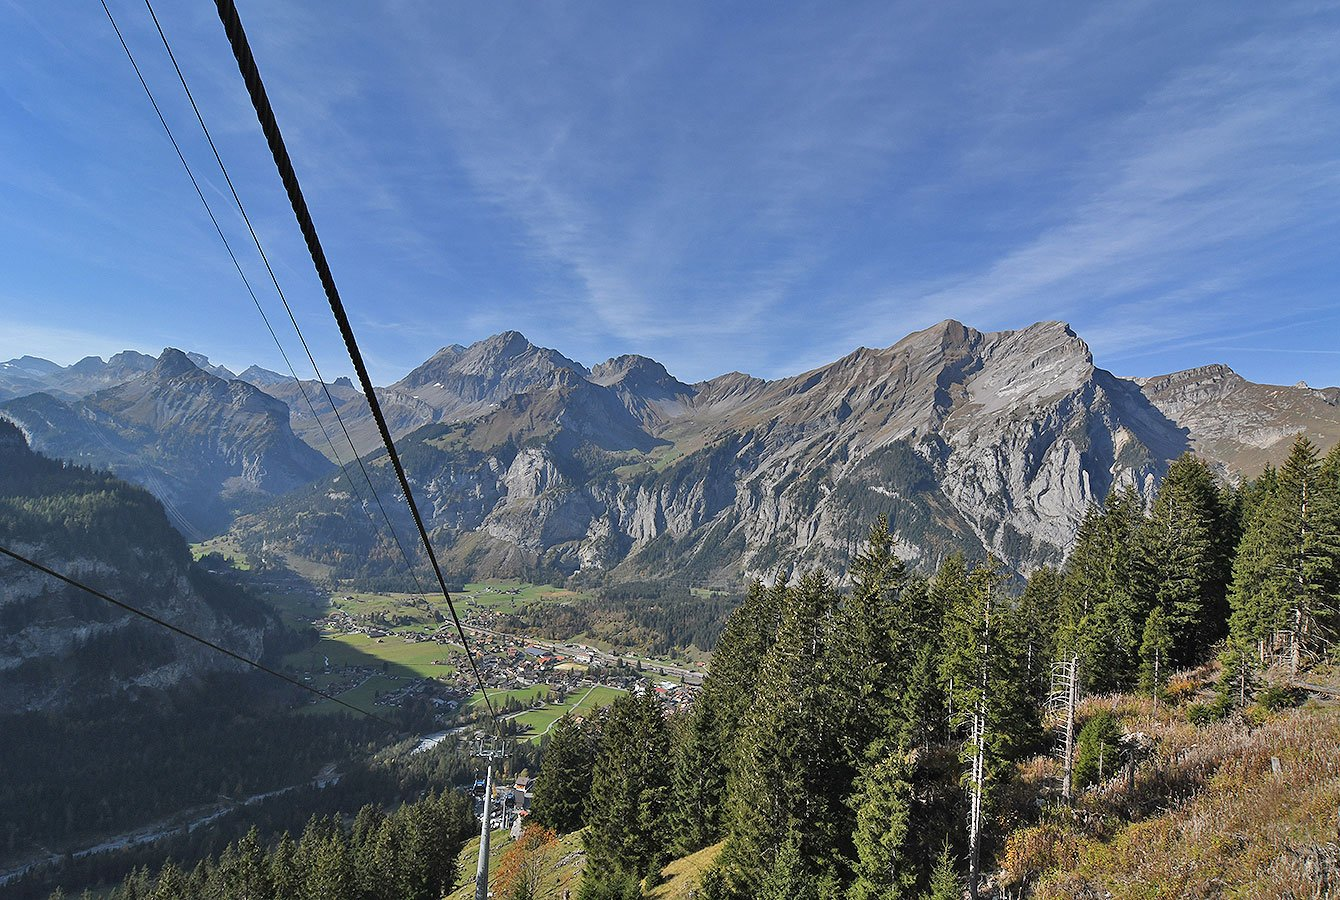 The Oeschinen valley with the cable car from Kandersteg - Switzerland